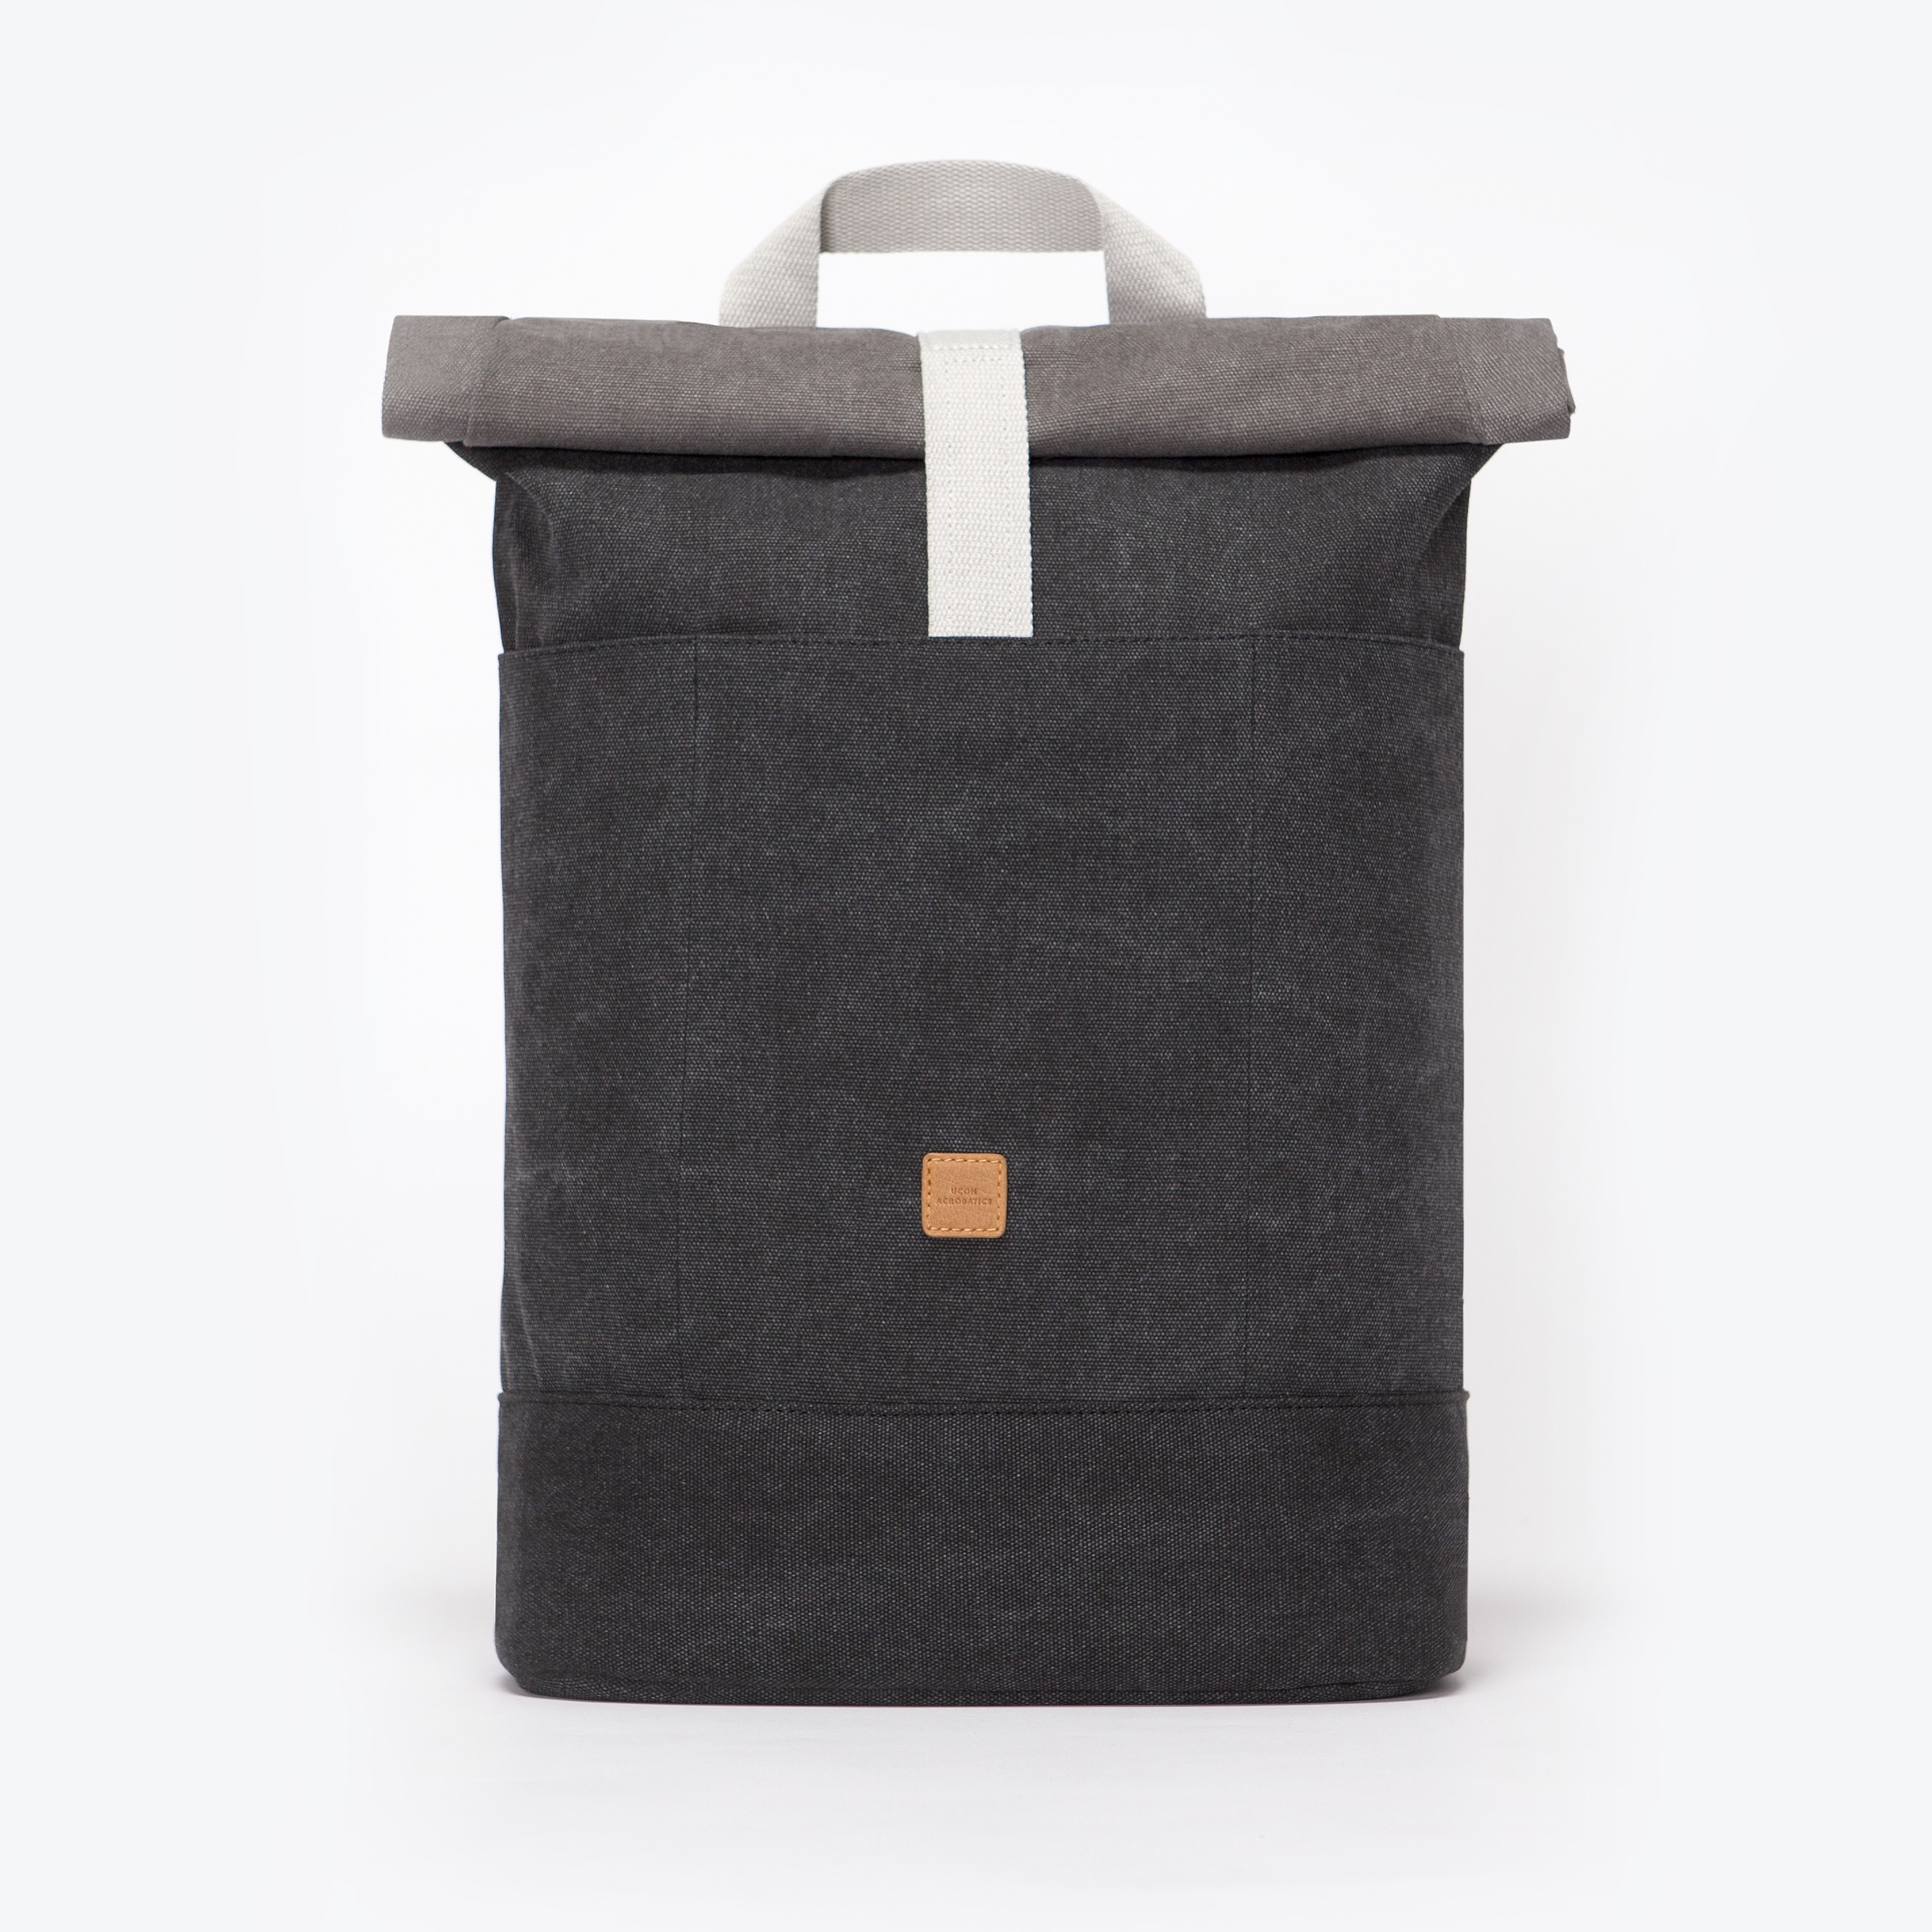 UA-BP-03_Hajo-Backpack_Black-Grey_06.jpg